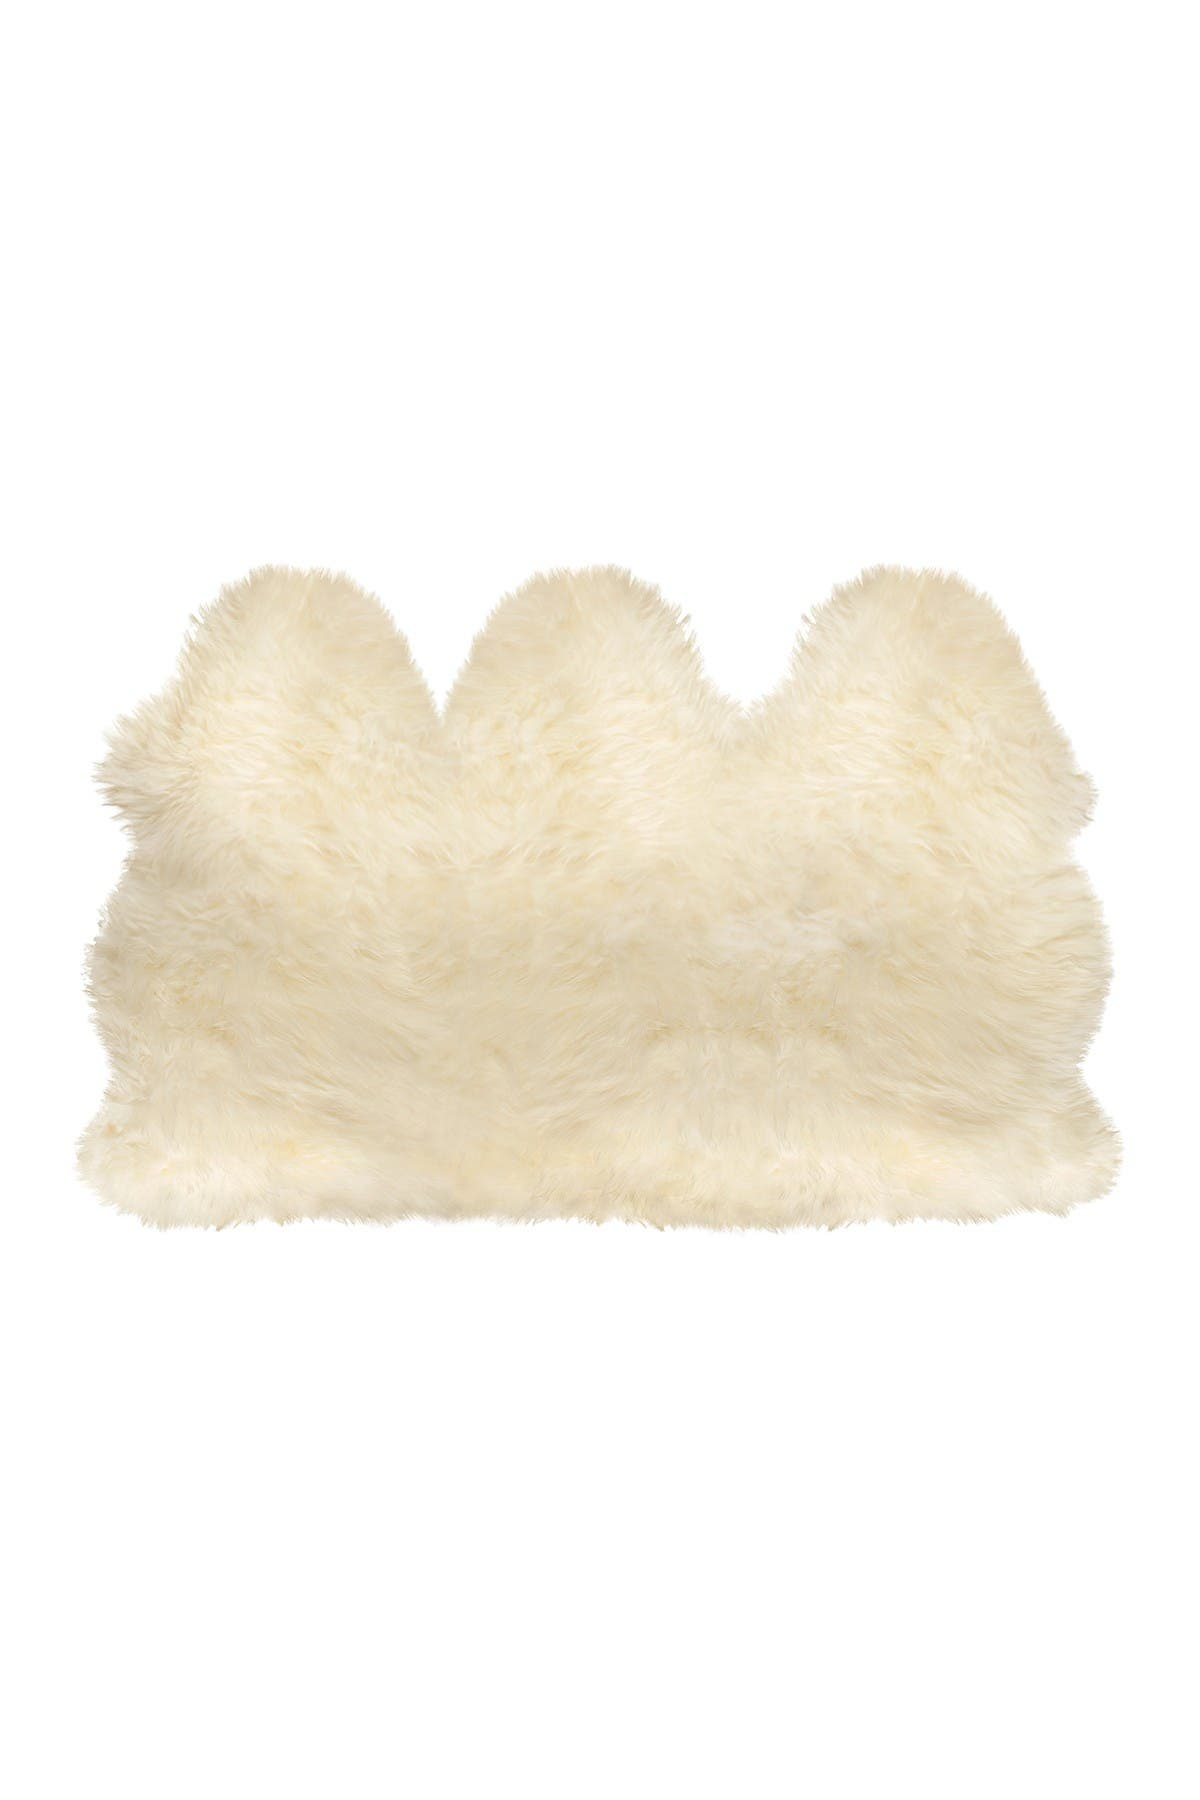 Image of Natural Genuine Sheepskin Throw - 3' x 5' - Natural